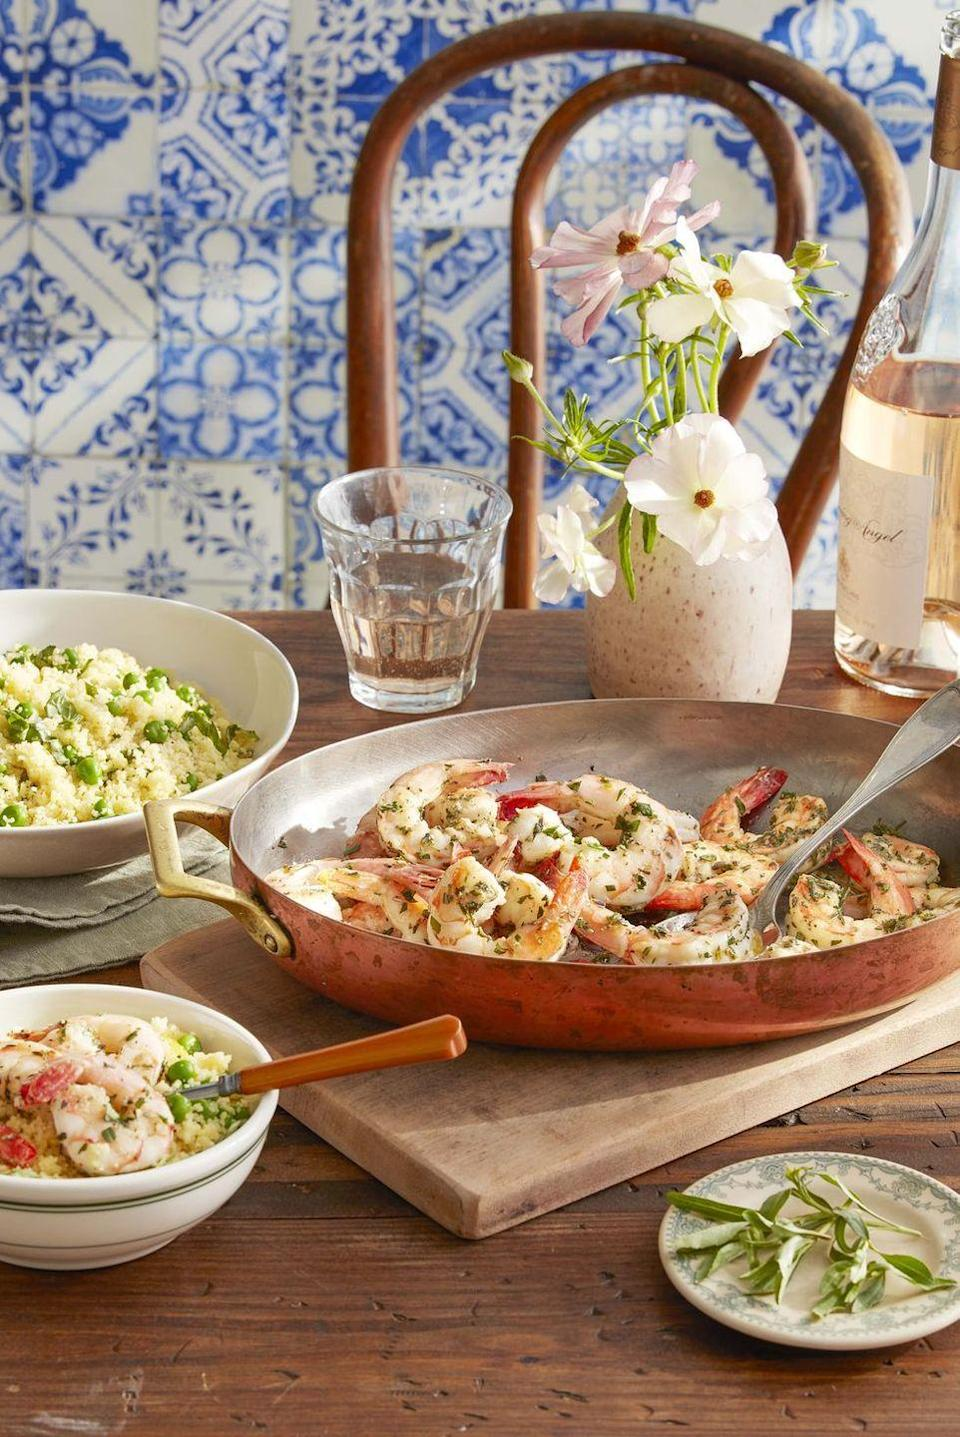 """<p>This is an ideal brunch meal. Grains, vegetable, and protein all together. Add a glass of wine, and you've got the perfect meal. </p><p><strong><a href=""""https://www.amazon.com/Mauviel-MHeritage-6453-26-Stainless-Eletroplated/dp/B01JSHJ9P2/ref=sr_1_9?tag=syn-yahoo-20&ascsubtag=%5Bartid%7C10050.g.3379%5Bsrc%7Cyahoo-us"""" rel=""""nofollow noopener"""" target=""""_blank"""" data-ylk=""""slk:Get the recipe"""" class=""""link rapid-noclick-resp"""">Get the recipe</a>.</strong> </p>"""